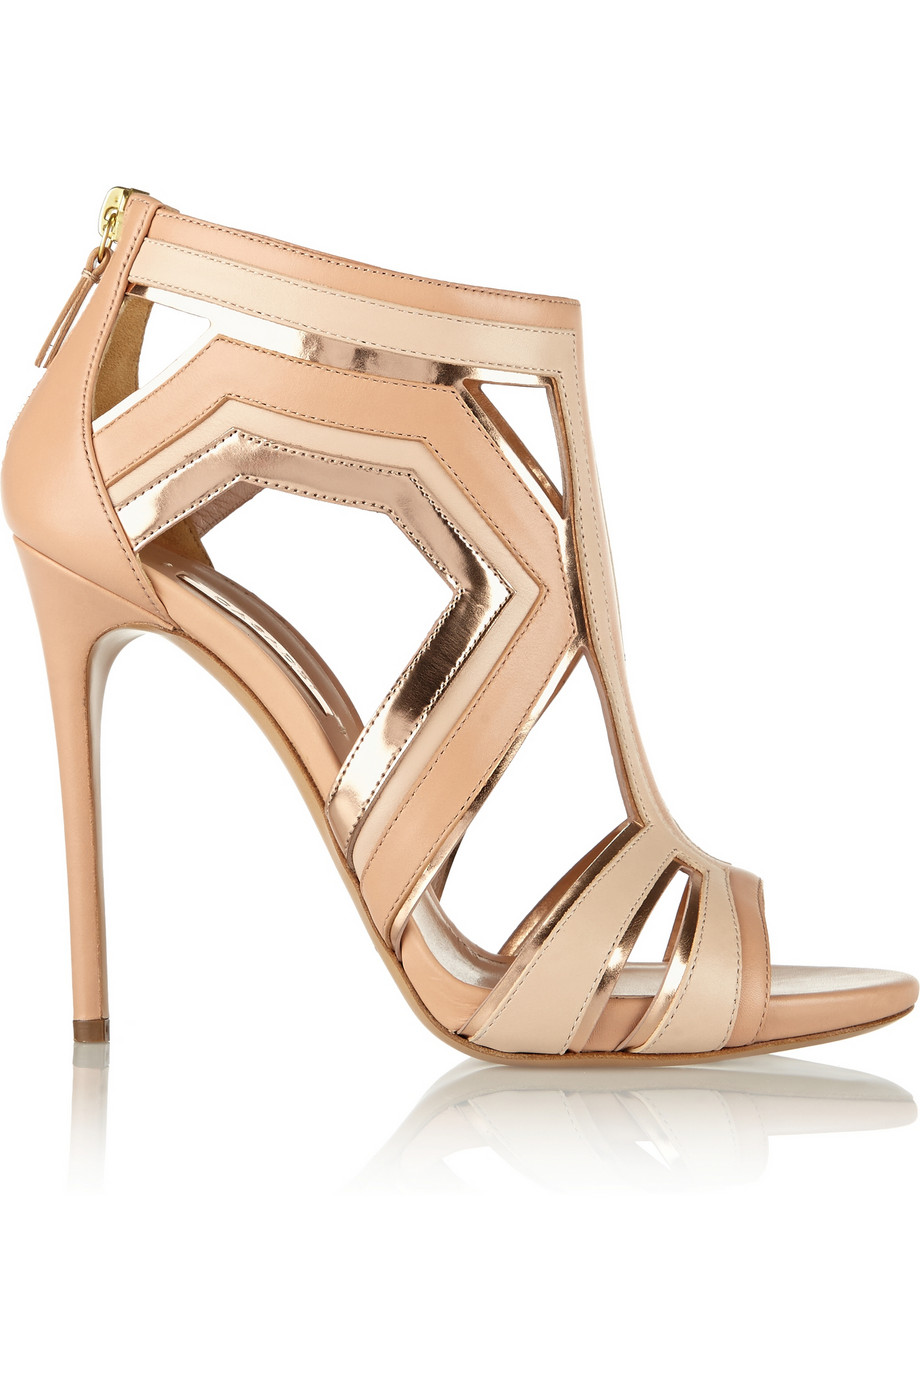 Casadei Panel Leather Sandals $480